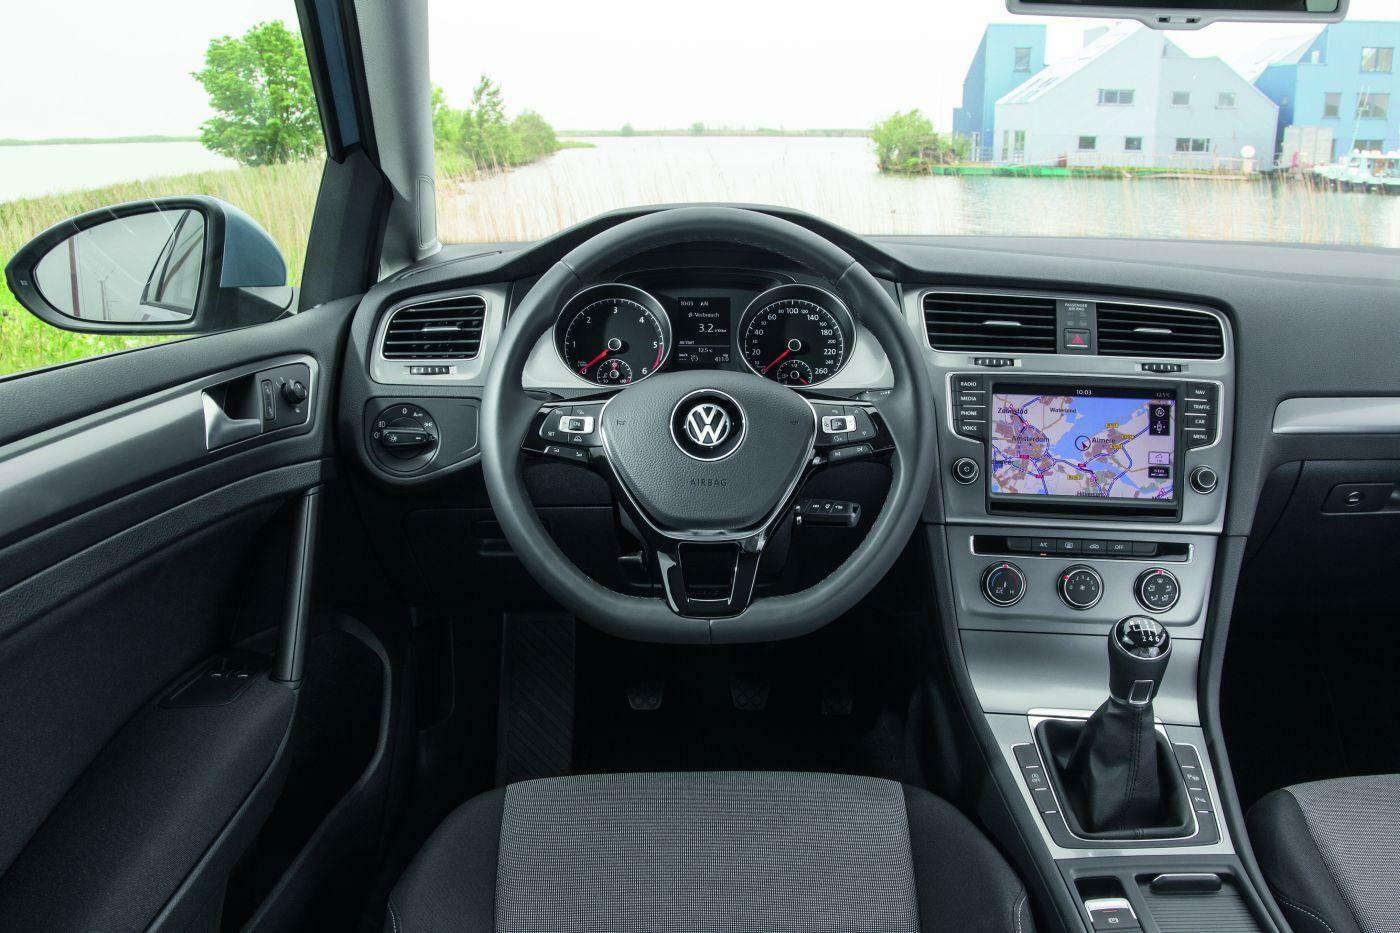 praxistest vw golf 1 2 tsi bmt im fahrbericht reichen 85 ps im golf. Black Bedroom Furniture Sets. Home Design Ideas